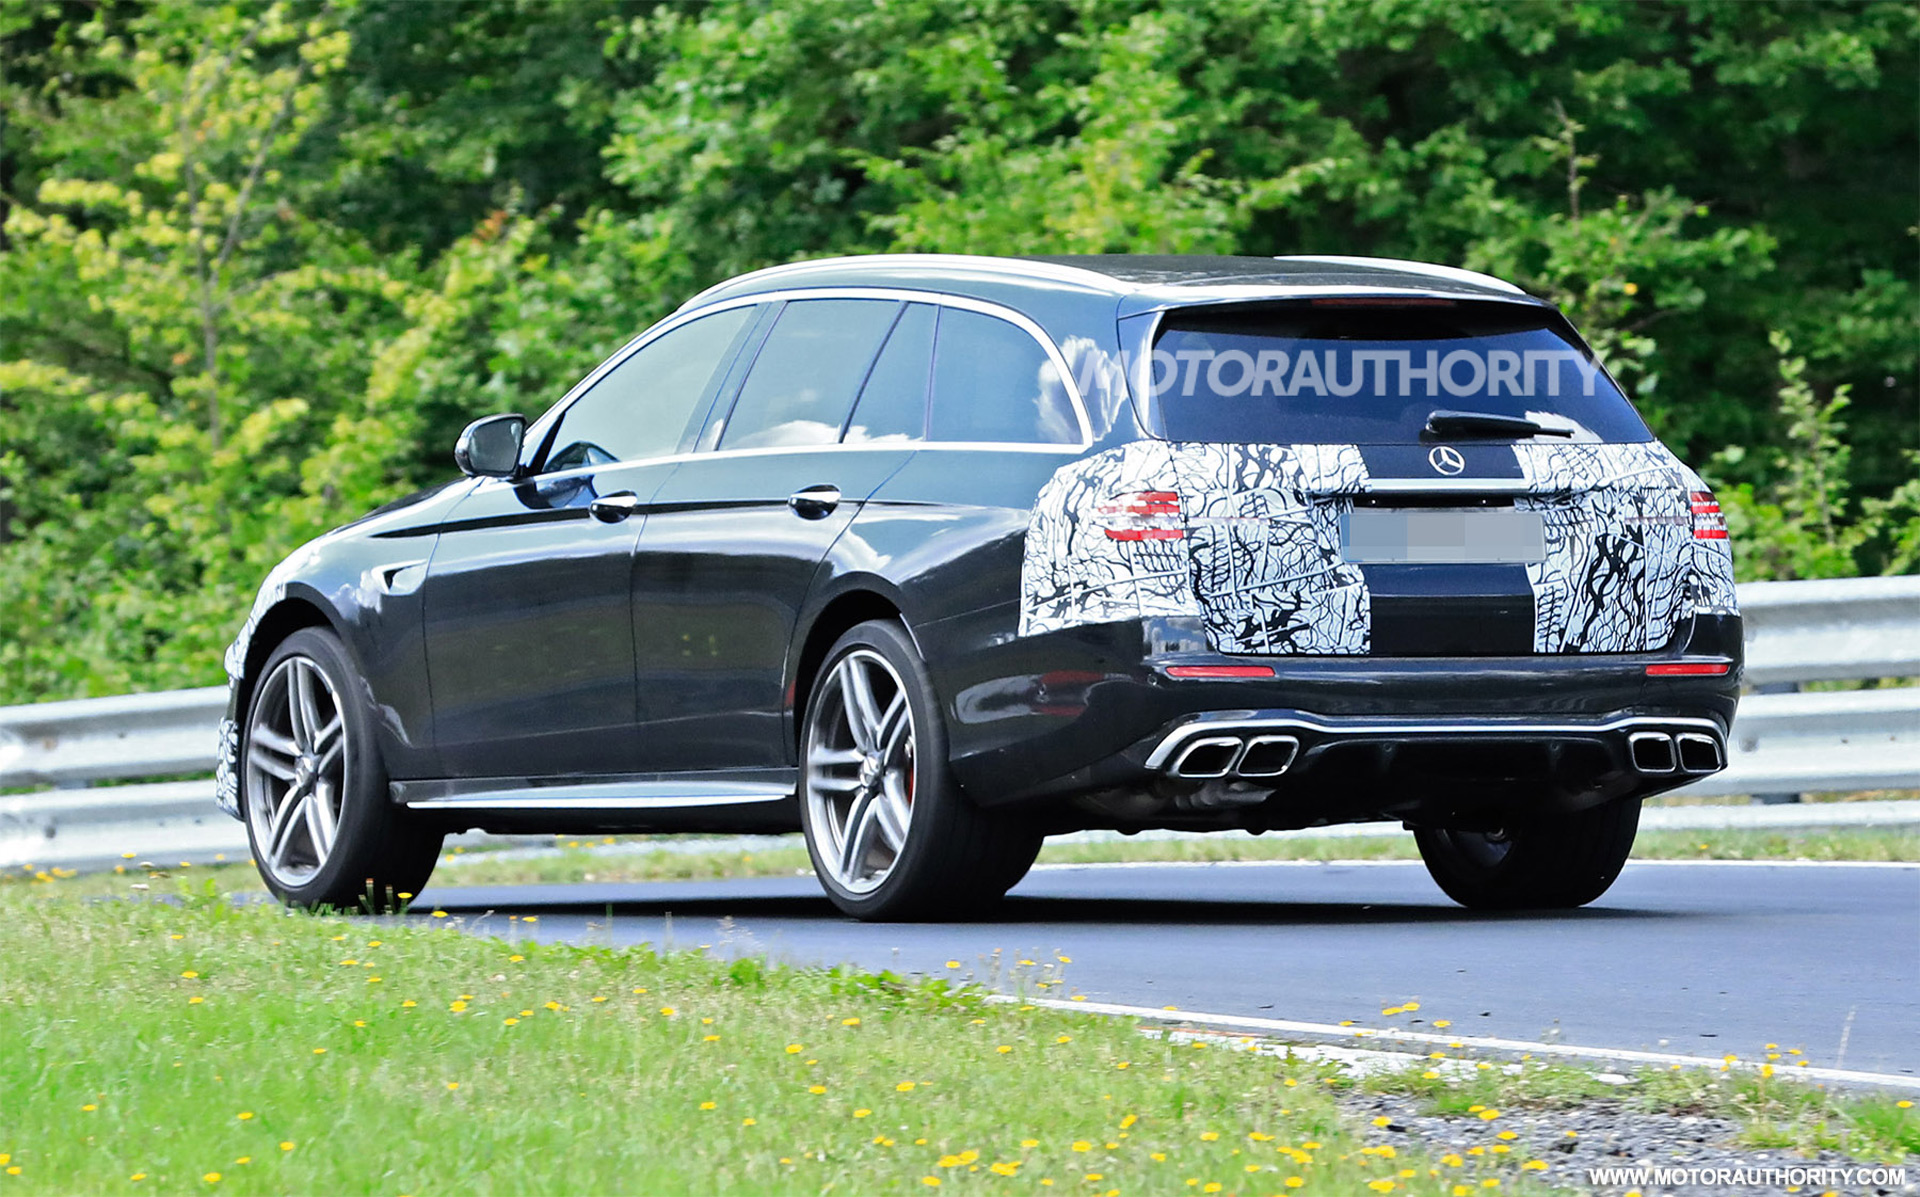 2020 - [Mercedes-Benz] Classe E restylée  - Page 2 2021-mercedes-amg-e63-wagon-facelift-spy-shots--photo-credit-s-baldauf-sb-medien_100711685_h